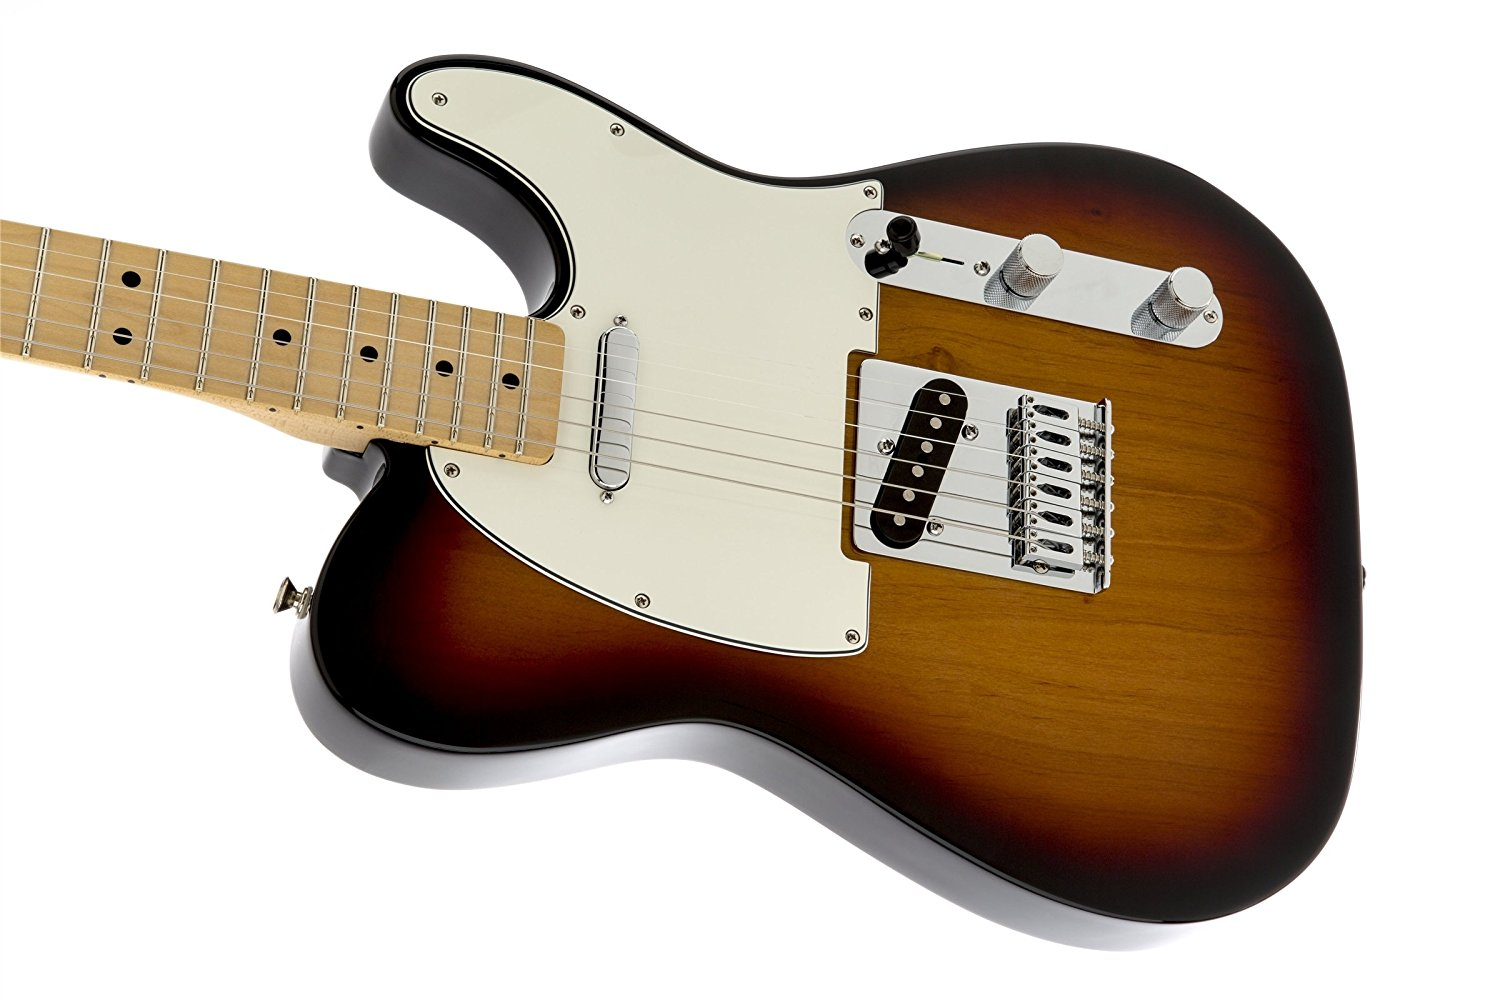 Fender Standard Telecaster Review Of The Mexican Tele Spinditty Guitars Fine Custom Handmade Basses Electric Guitar Parts